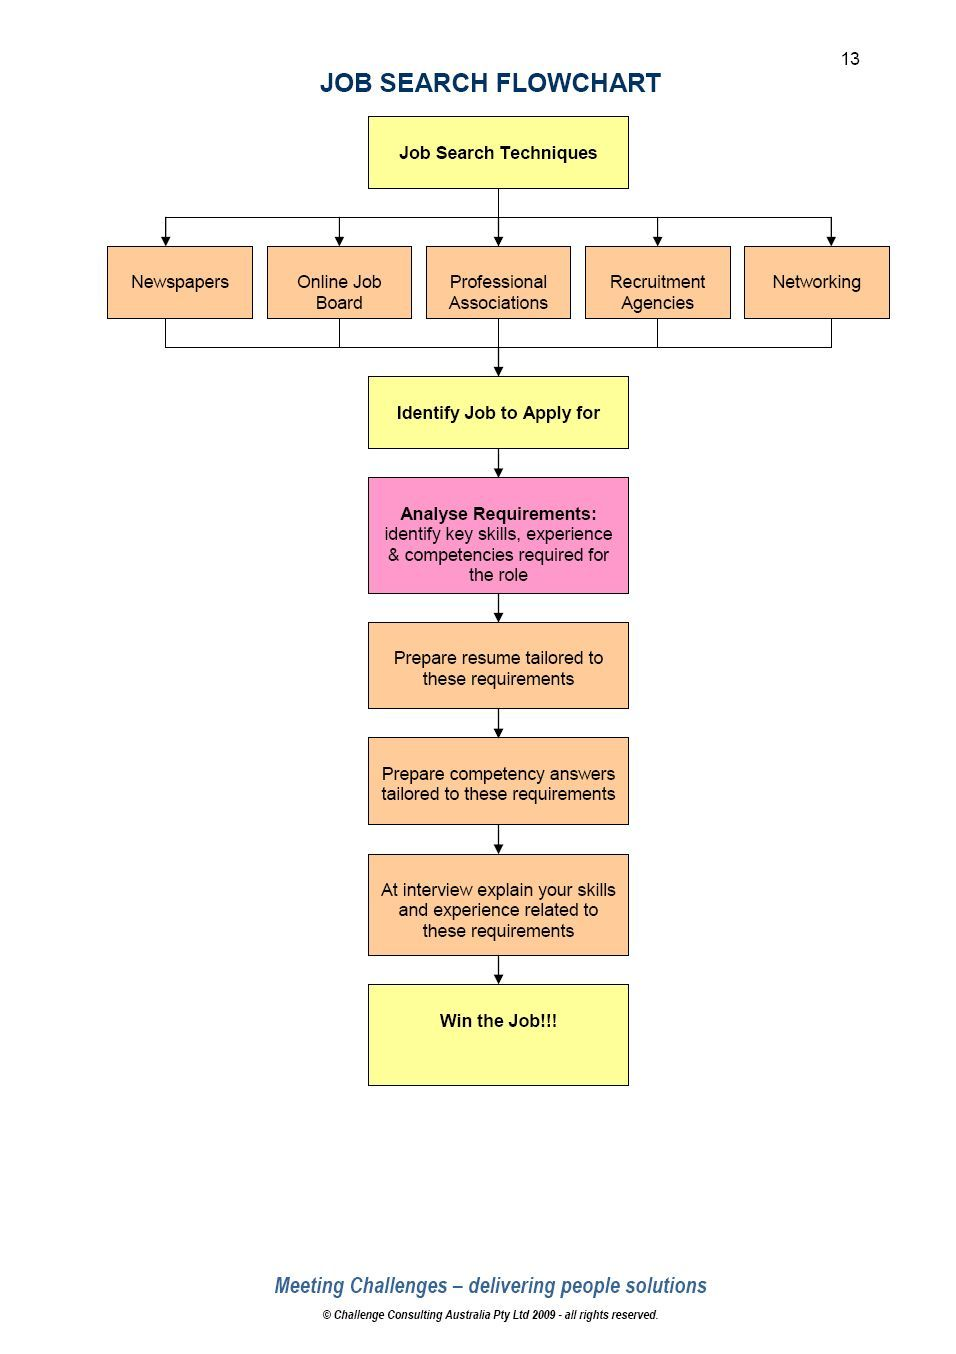 Job search flowchart career advice education interview also searching for  rh pinterest